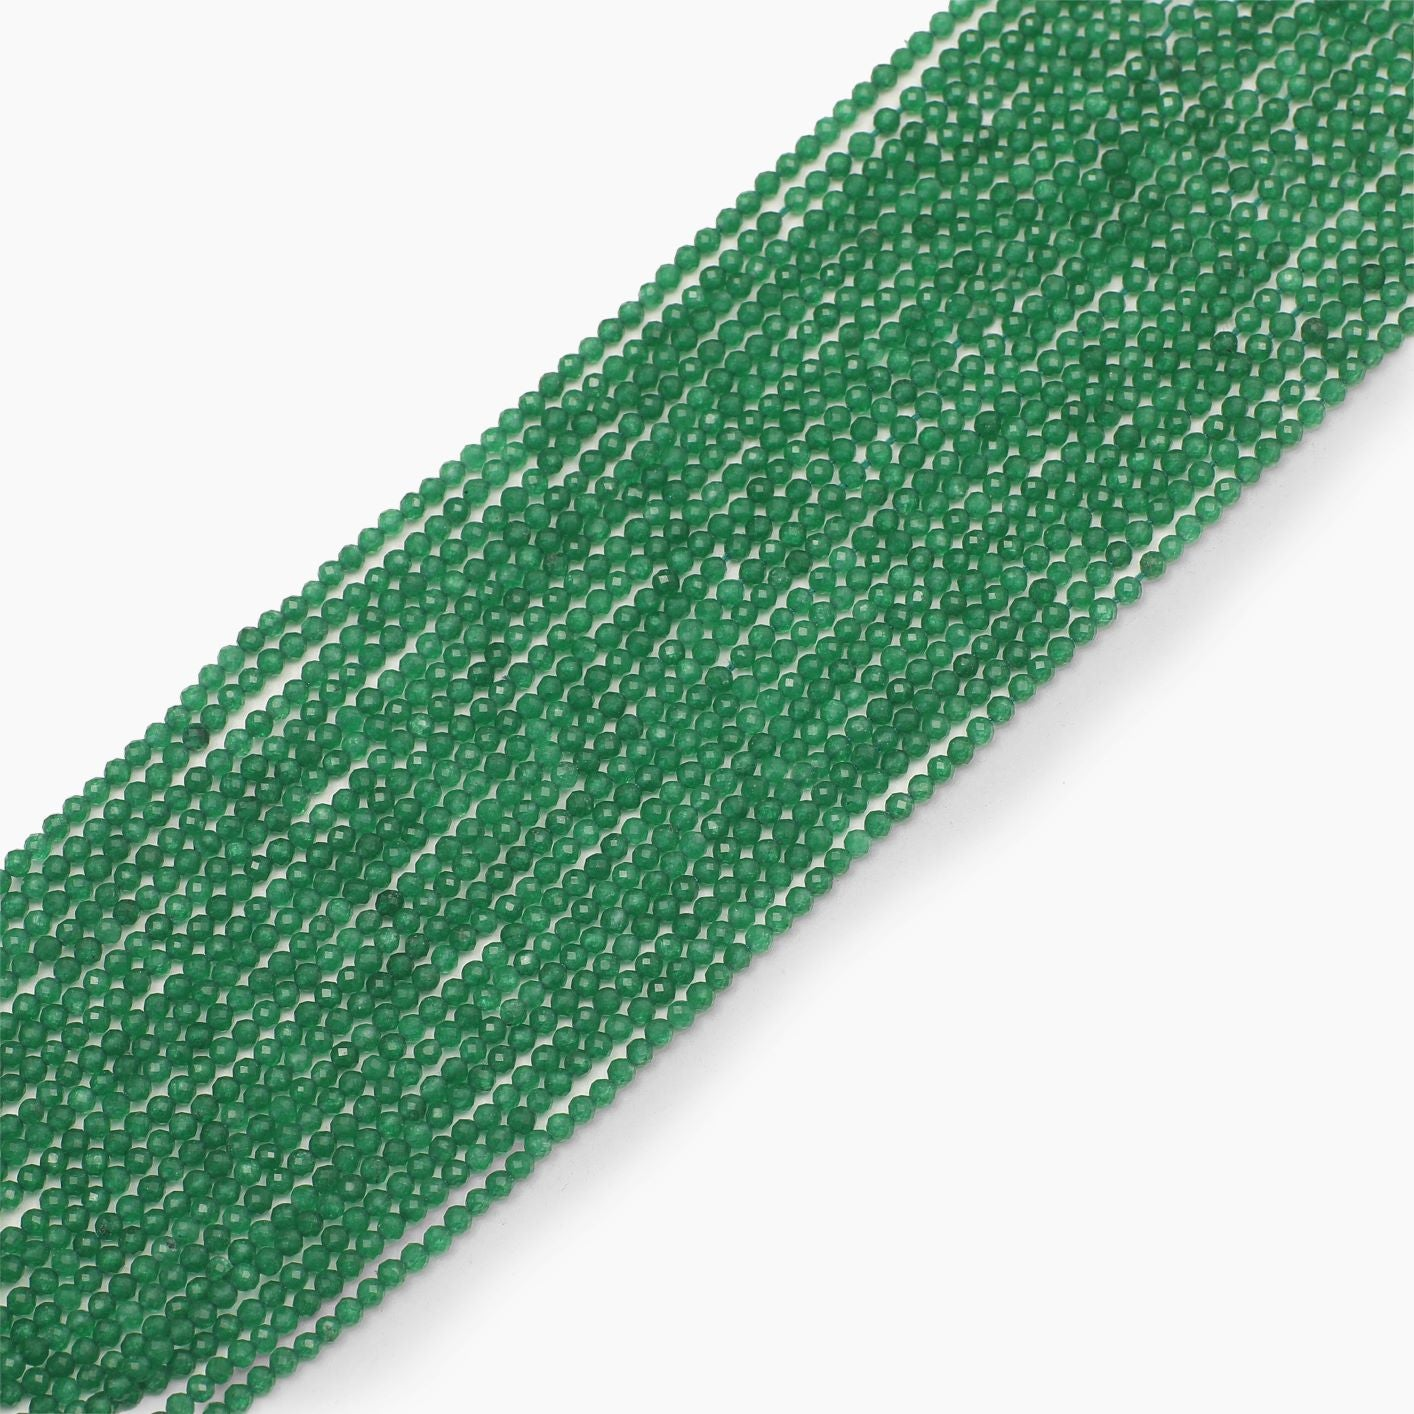 Dark green Jade Quartz Diamond Cutting Beads- Sold Per Strand